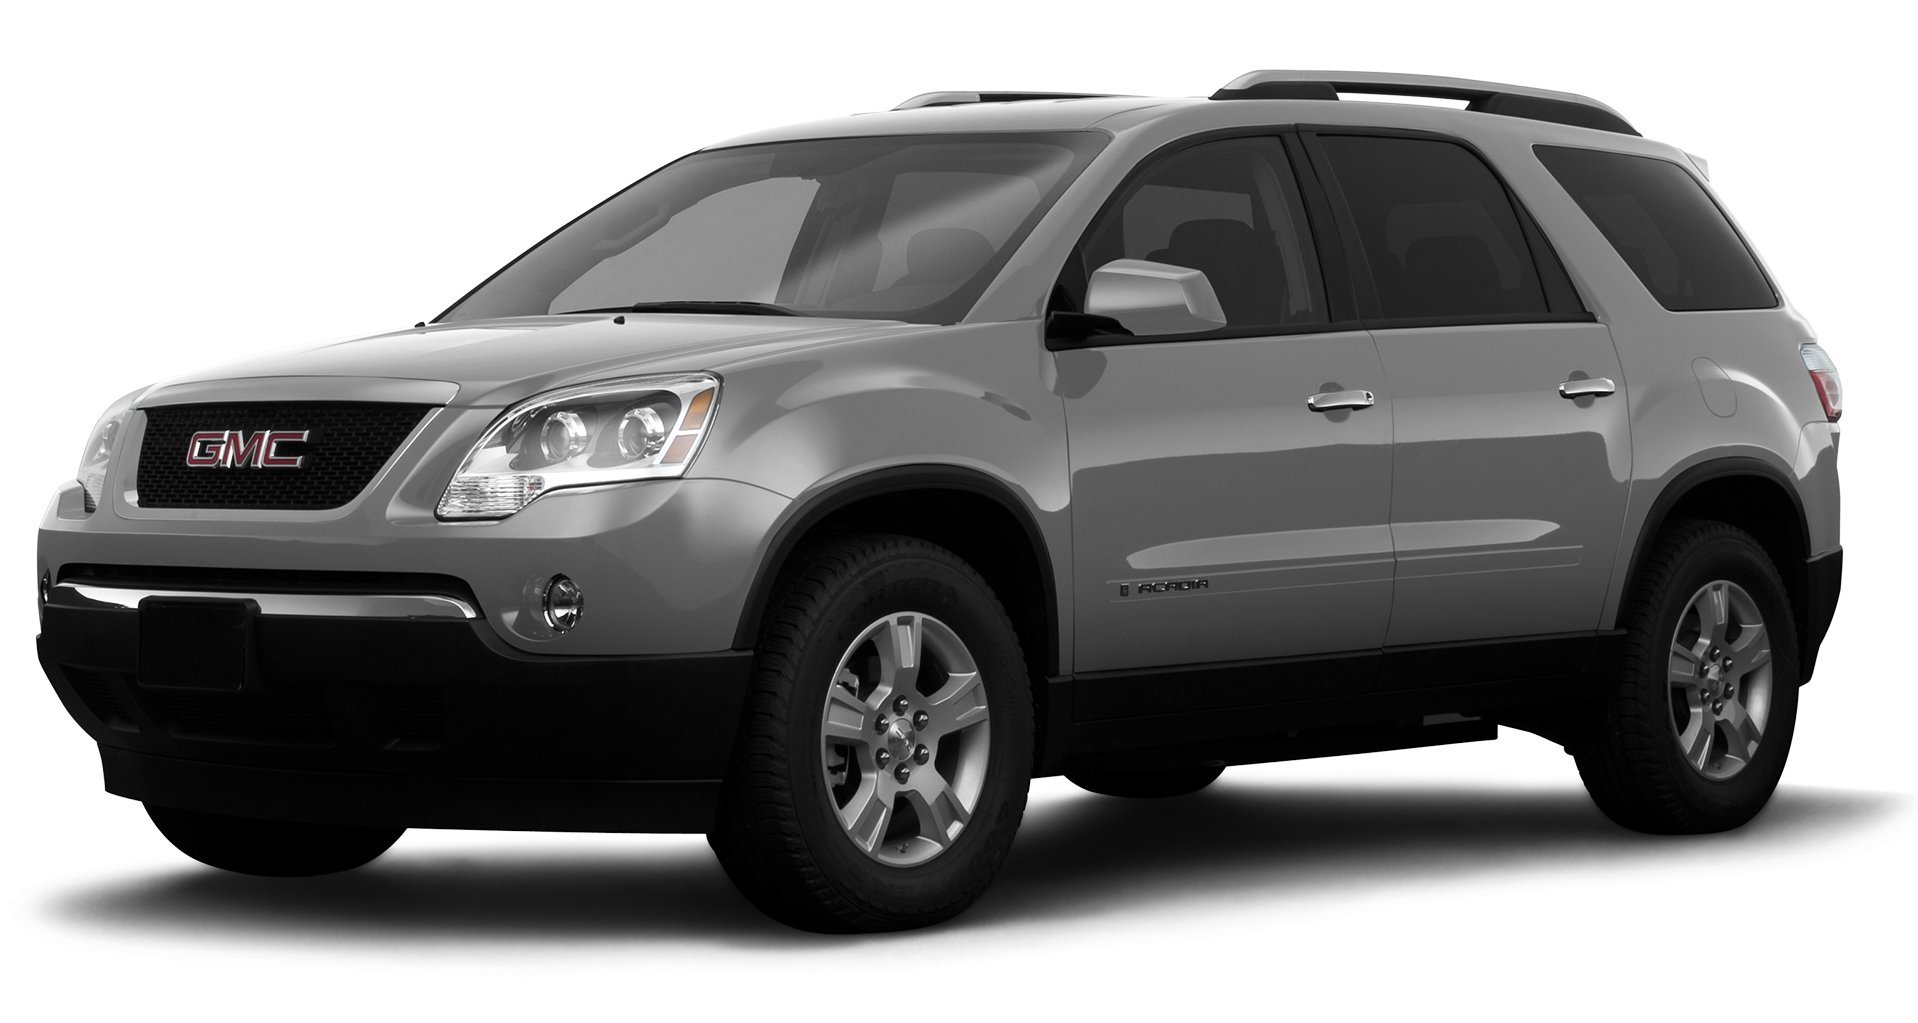 2008 gmc acadia reviews images and specs. Black Bedroom Furniture Sets. Home Design Ideas